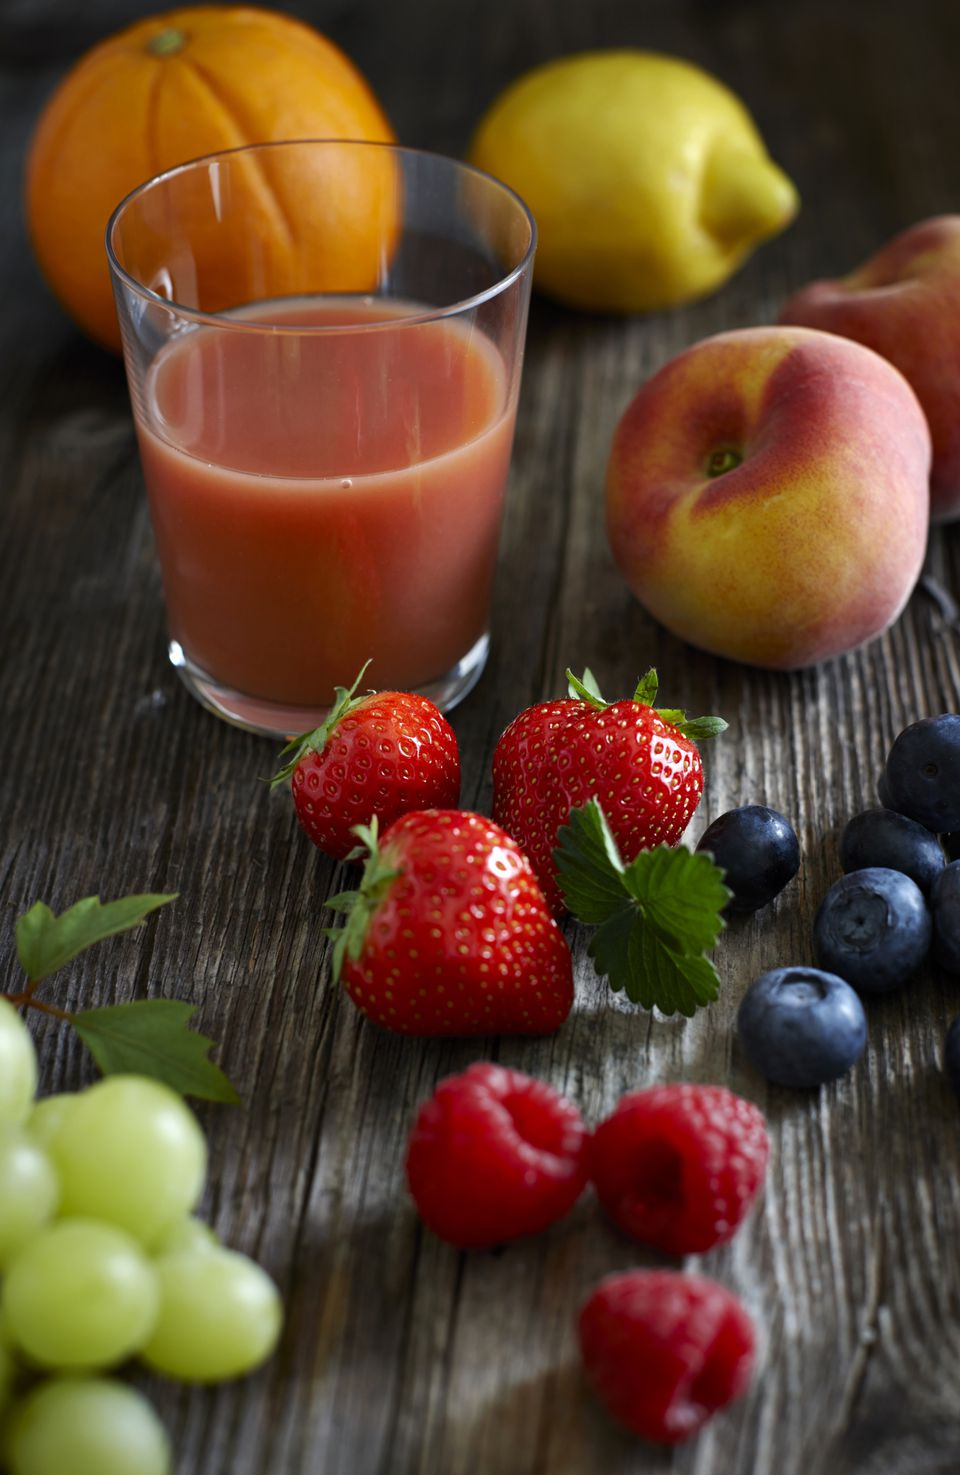 A smoothie surrounded by its component fruit